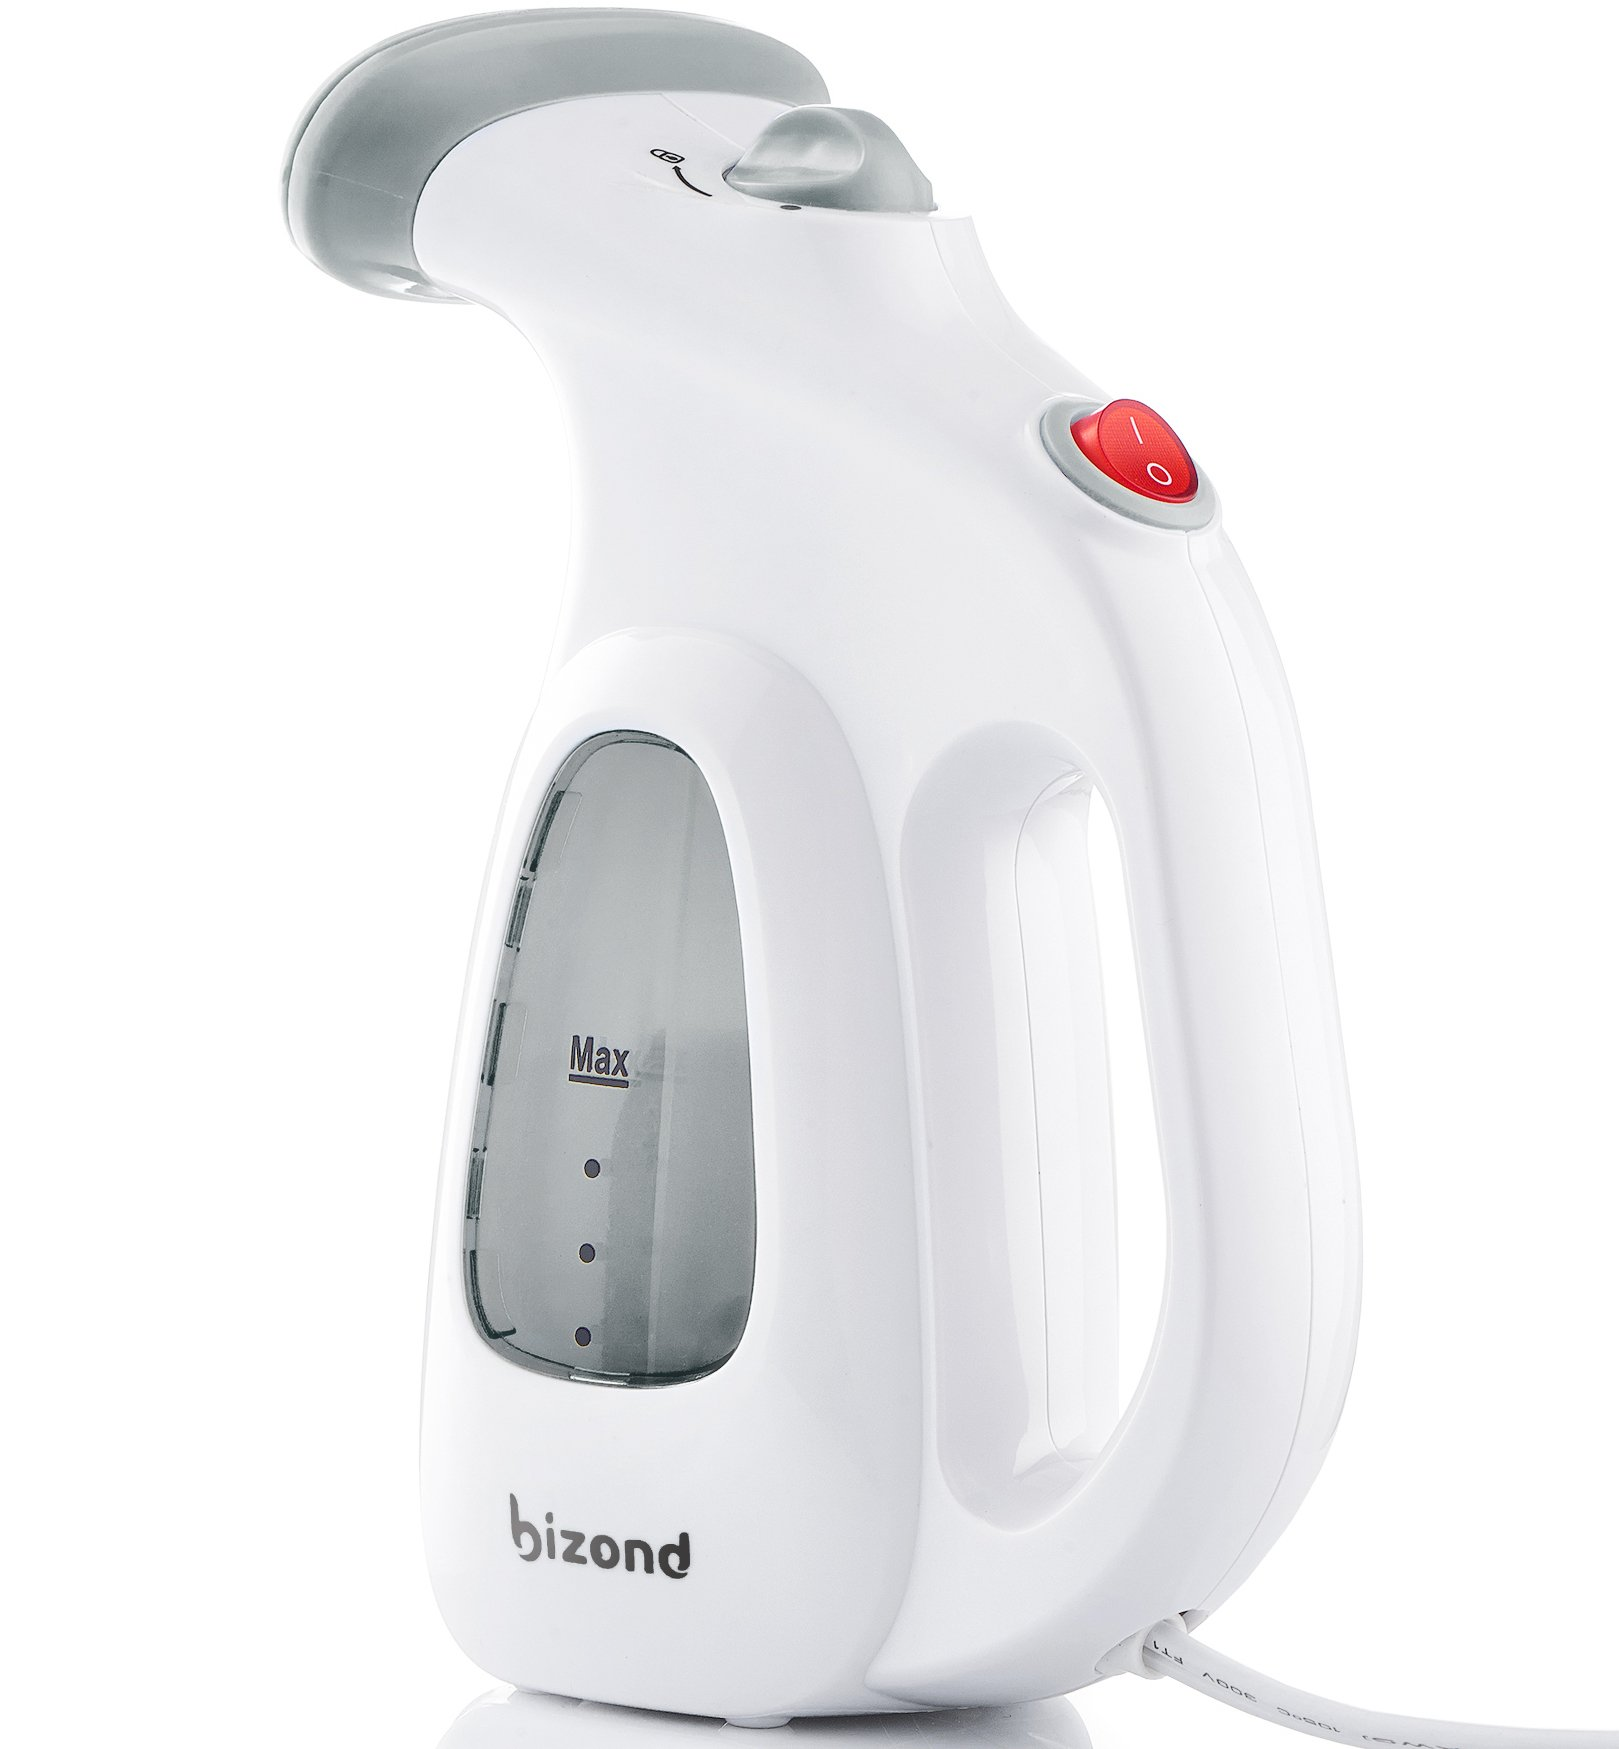 BIZOND Portable Garment Steamer for Clothes, Handheld - Home and Travel Accessories - Compact Mini Steamer Clothing, Fabric, Draperies, Shirt - Safe and Little Handy, Anti-Spill Steamer Iron - (Gray)